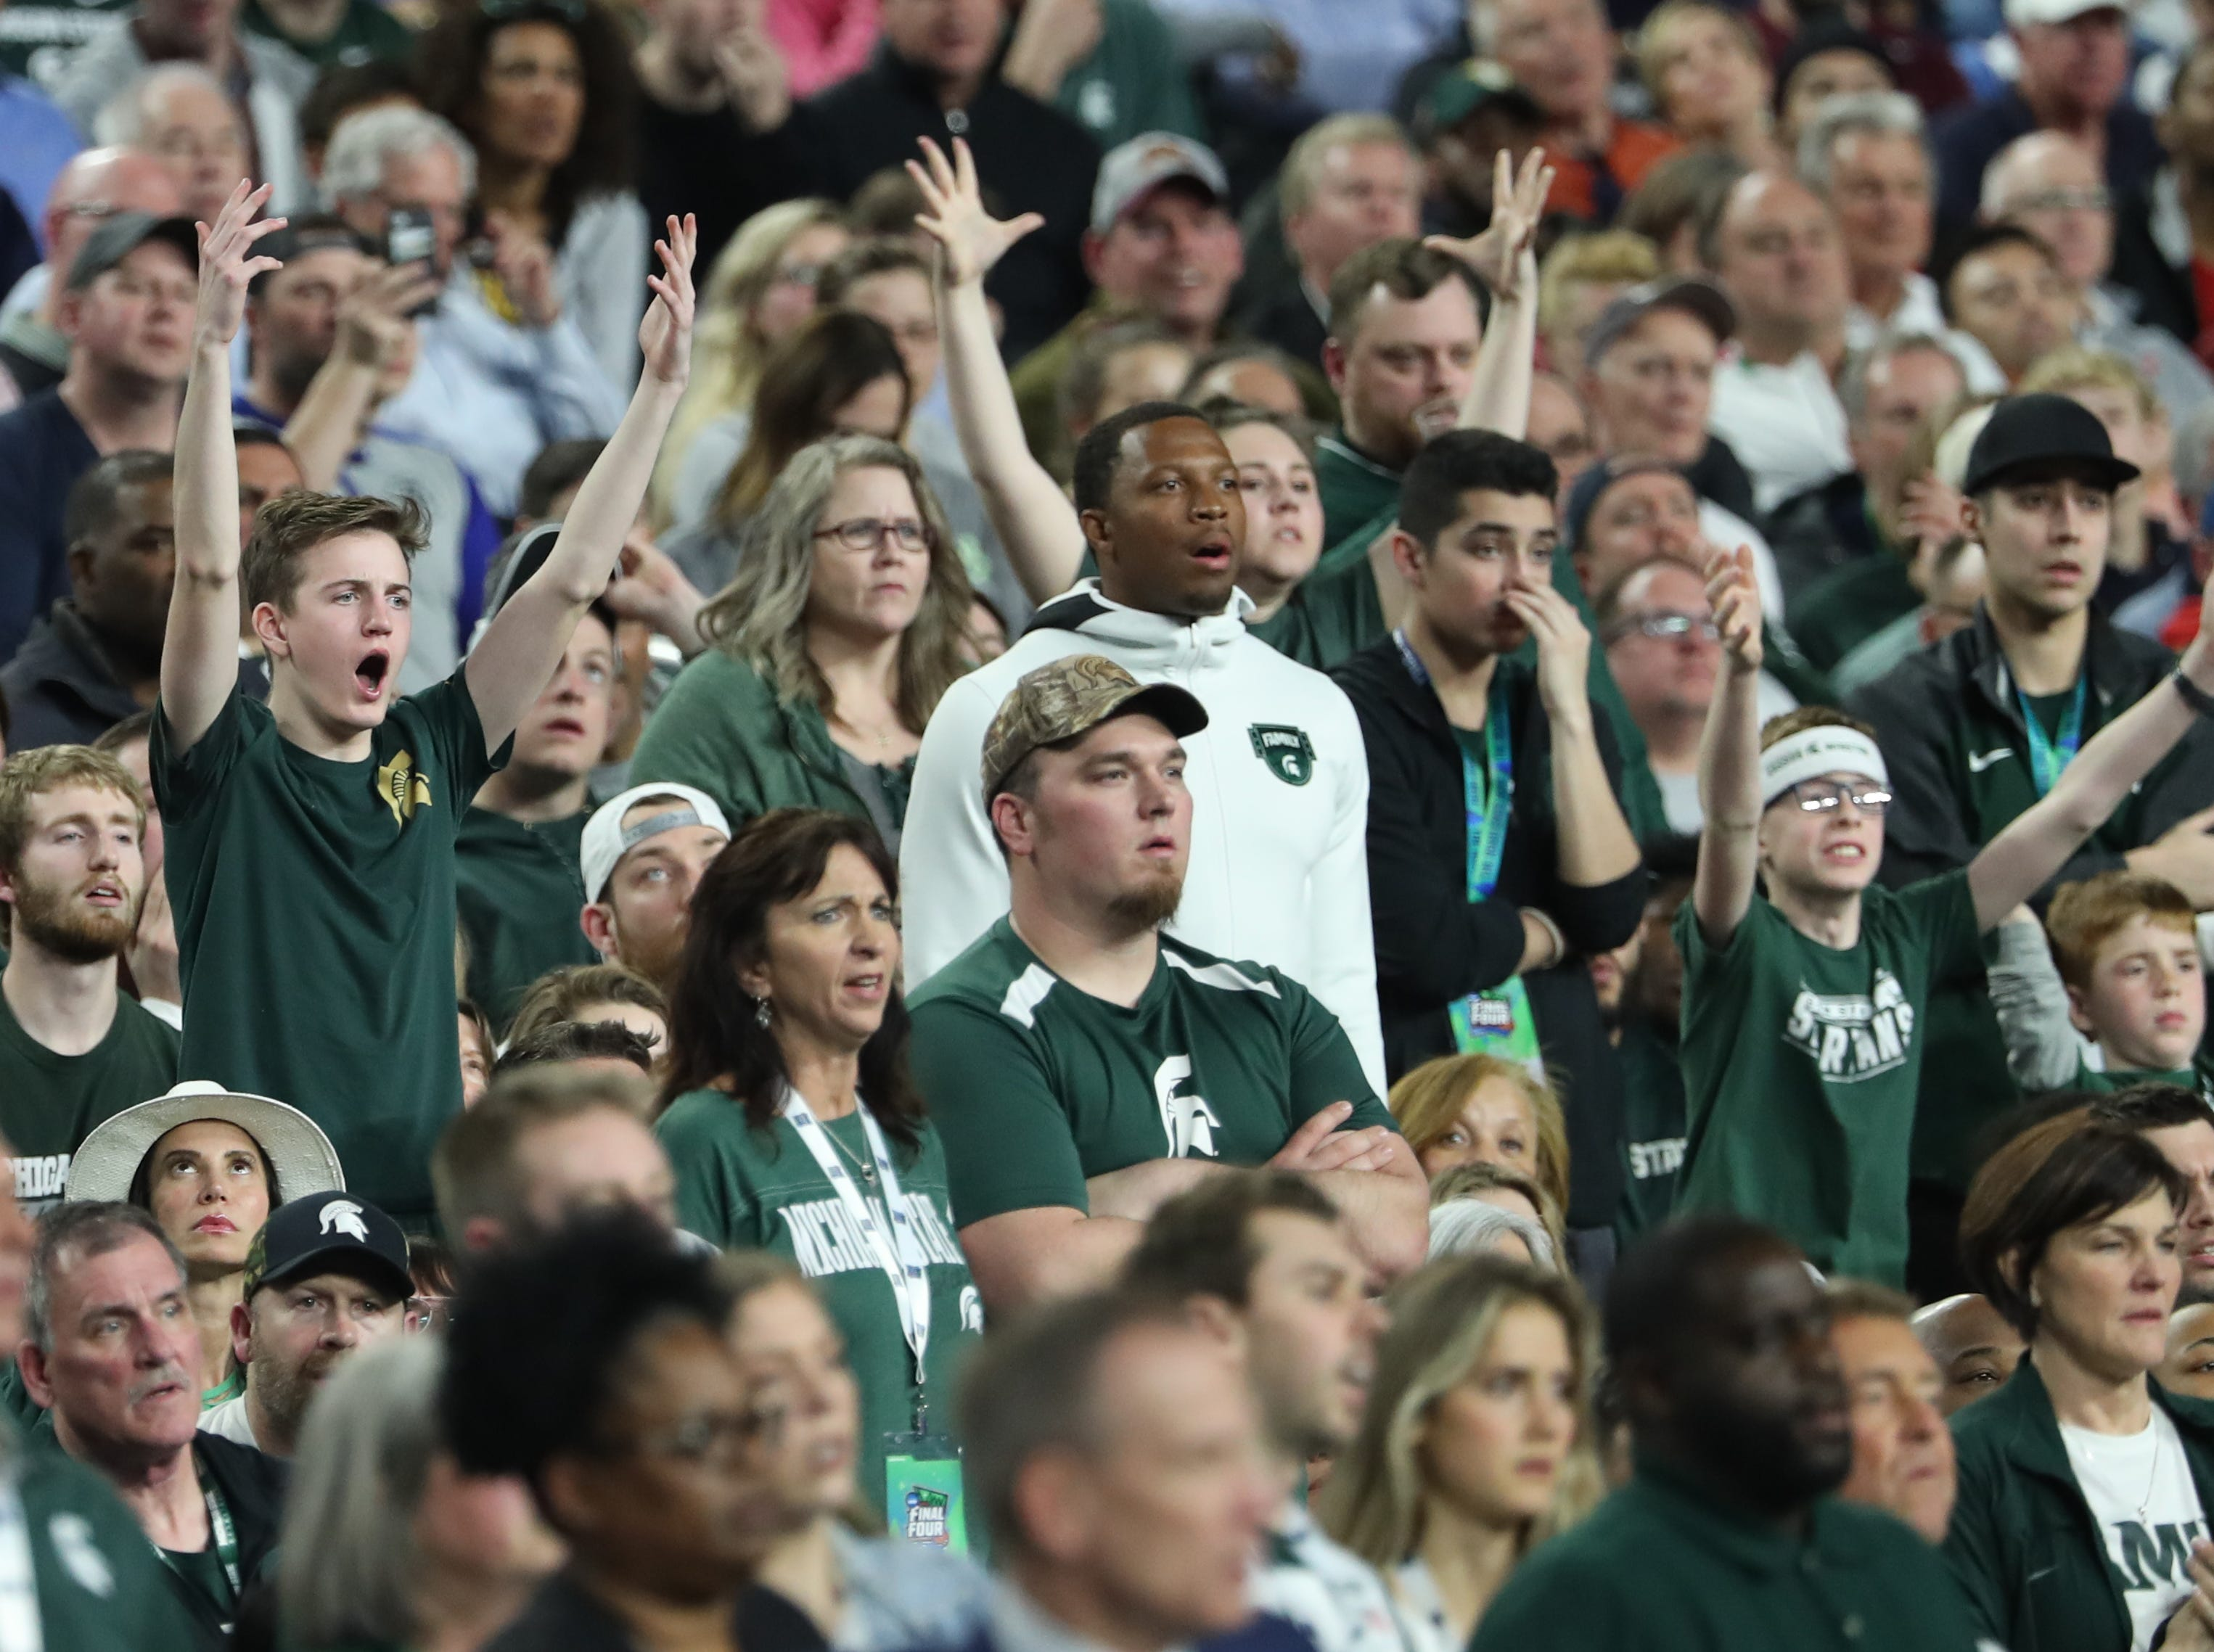 Michigan State fans react in the second half of the Spartan's Final Four game against Texas Tech at U.S. Bank Stadium in Minneapolis, Minnesota on Saturday, April 06, 2019.